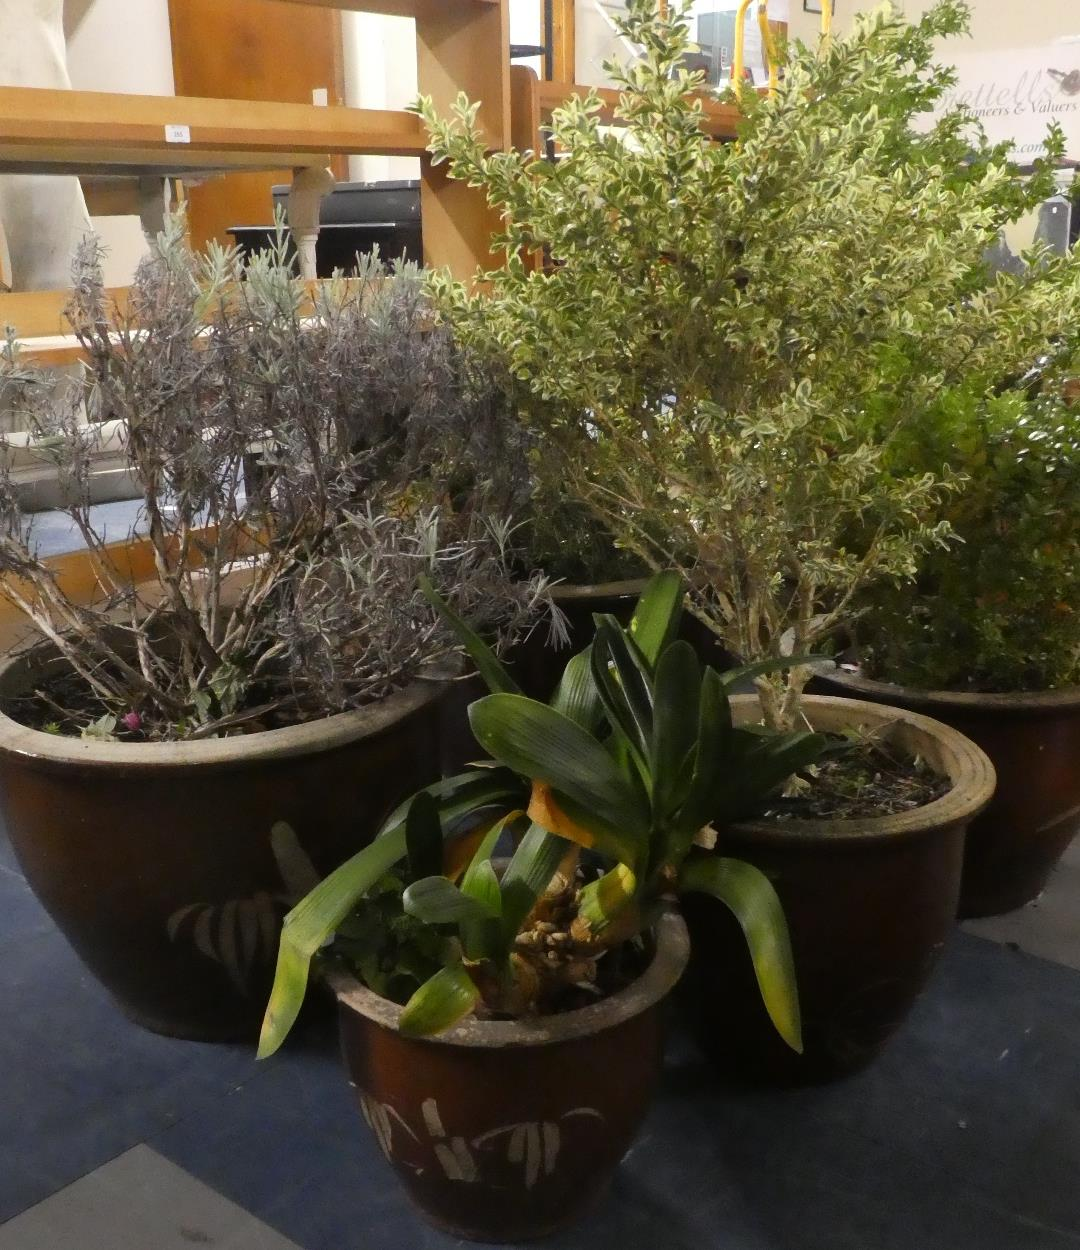 Lot 455 - A Collection of Five Glazed Stoneware Patio Planters containing Shrubs